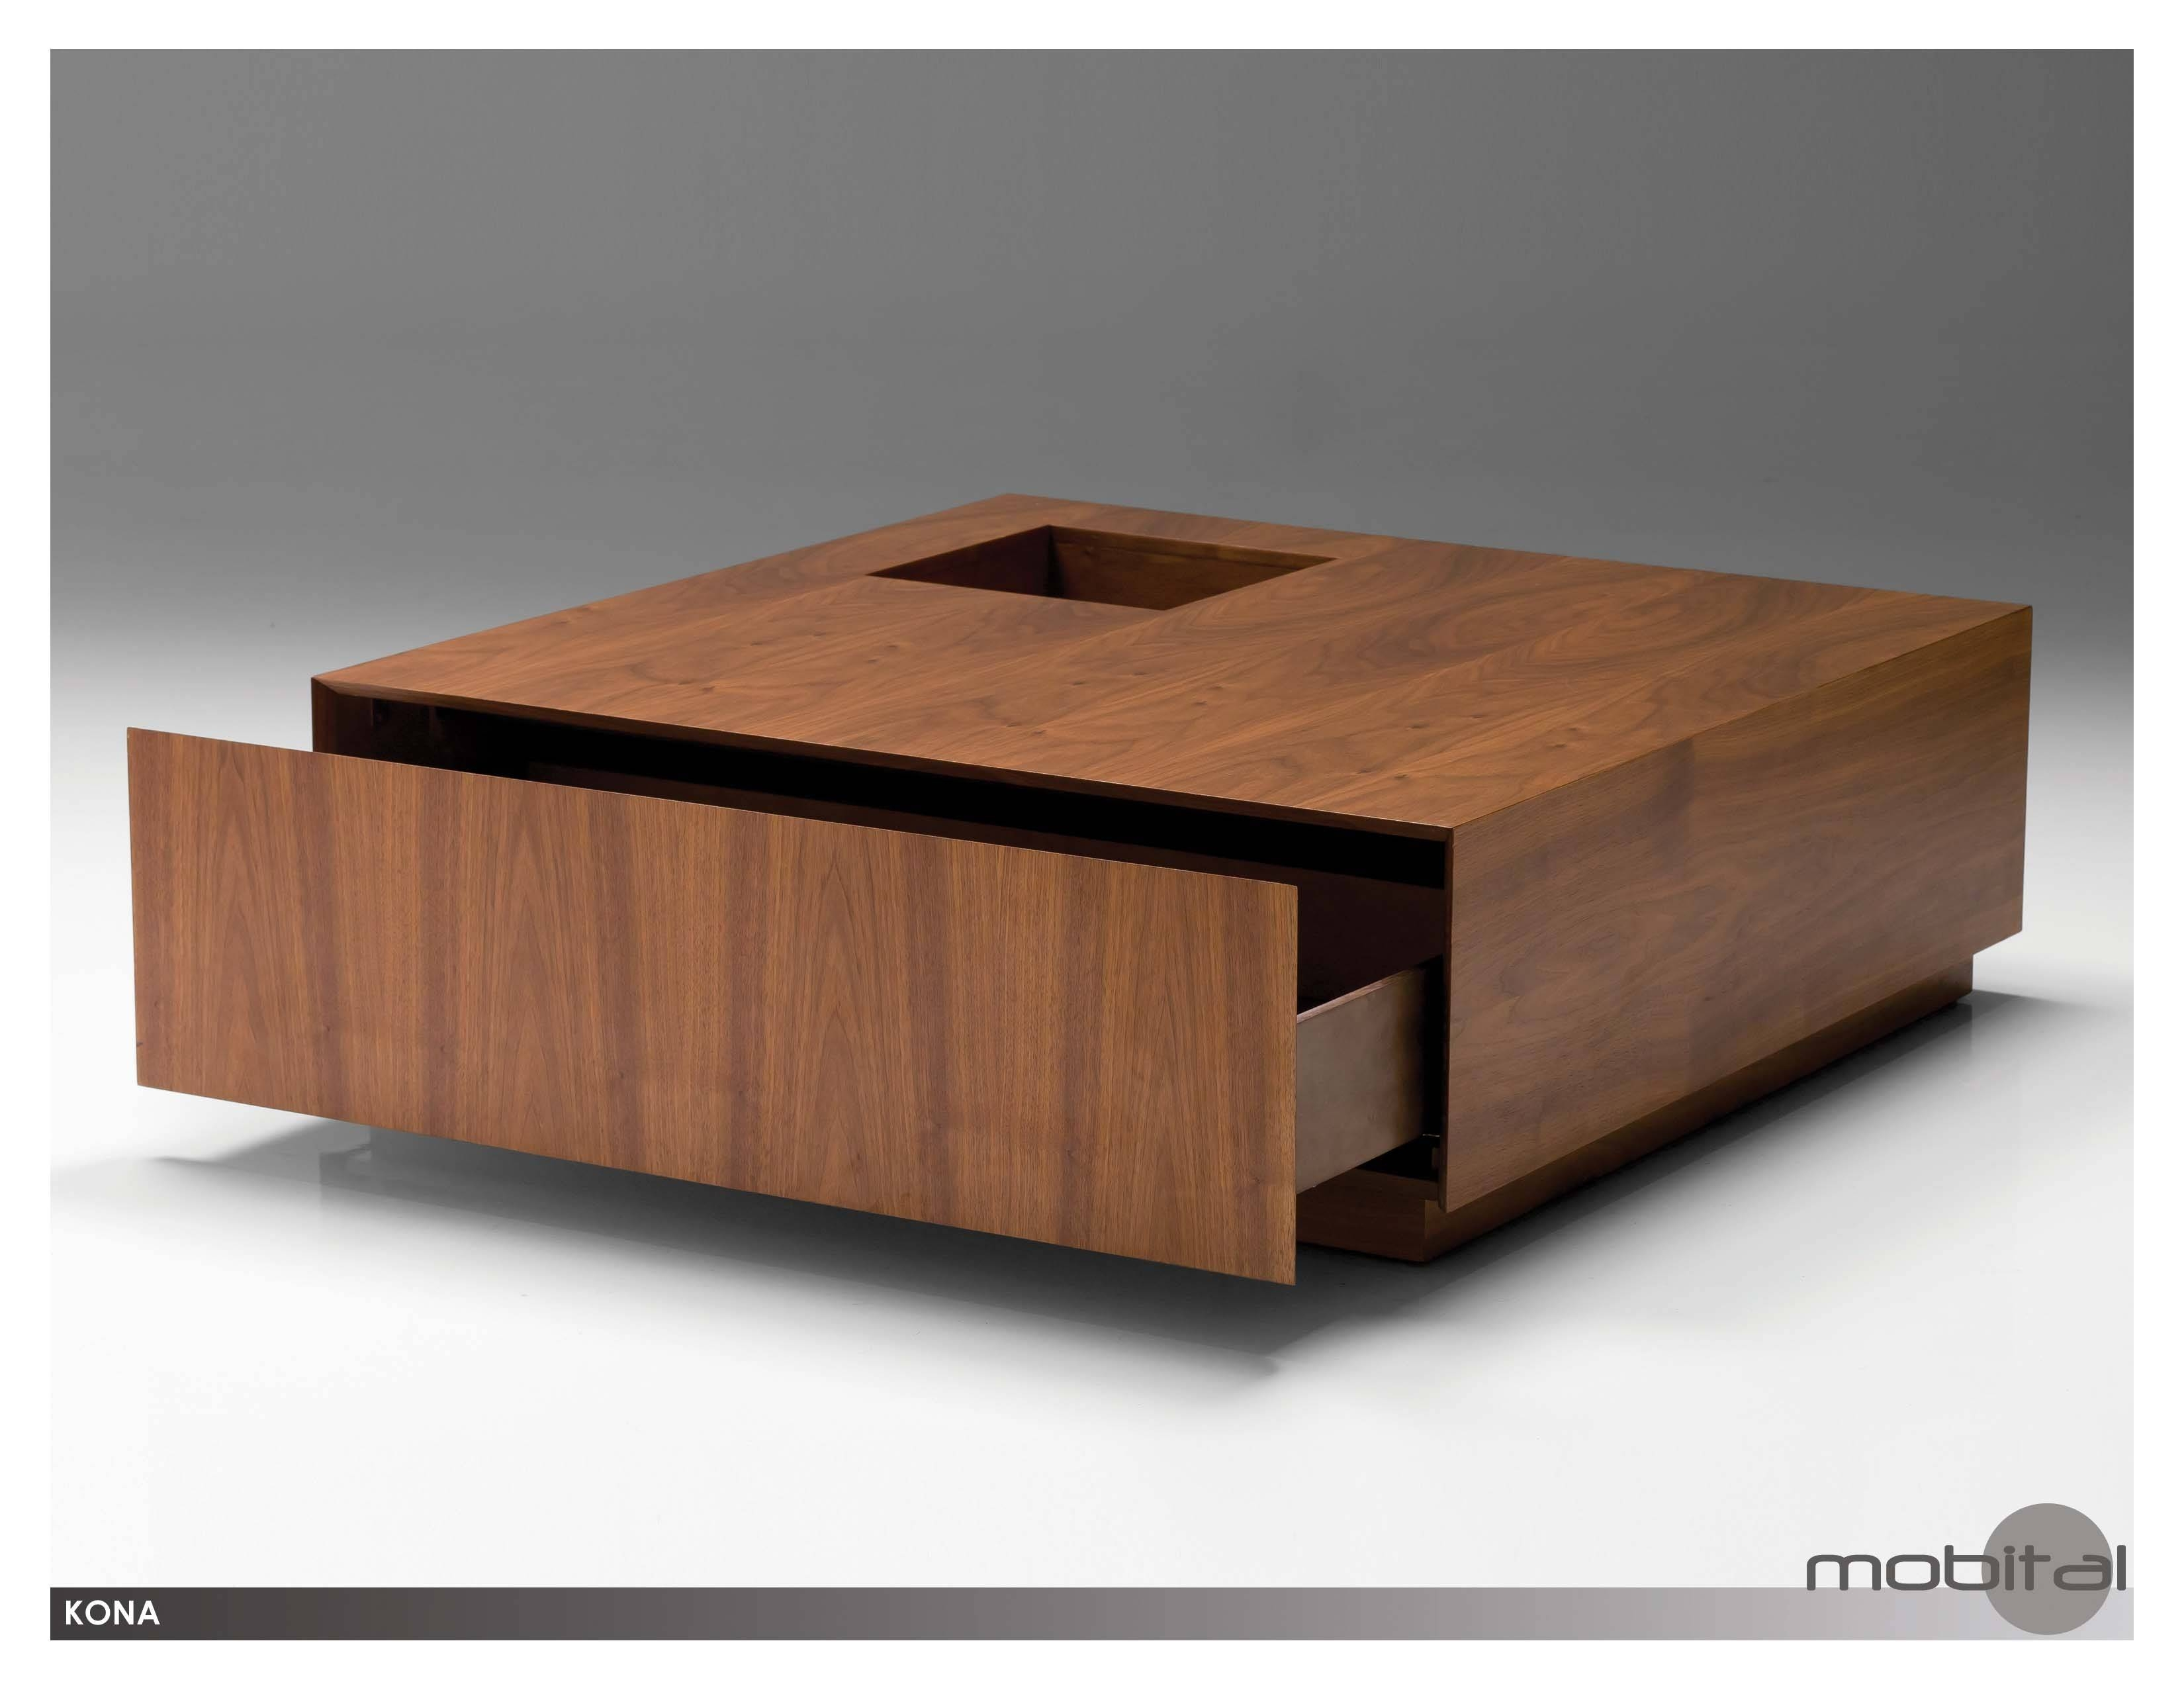 Coffee Table: Amusing Square Coffee Table With Storage Designs Regarding Square Coffee Tables With Storages (View 4 of 30)